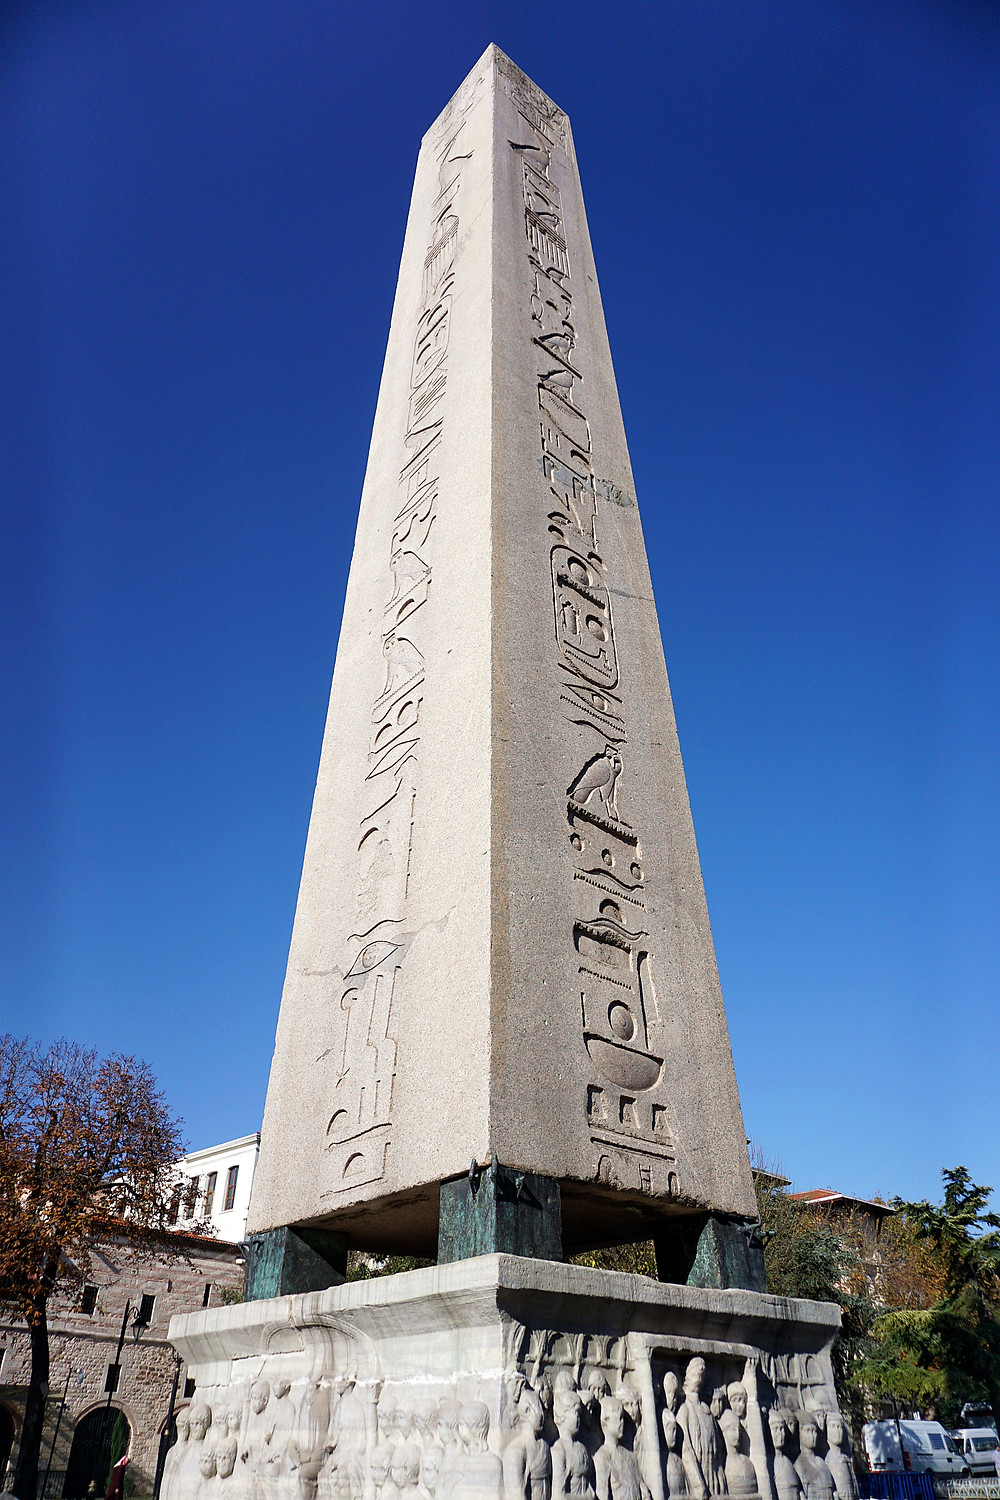 Very classic Egyptian symbol crafted in the monument.